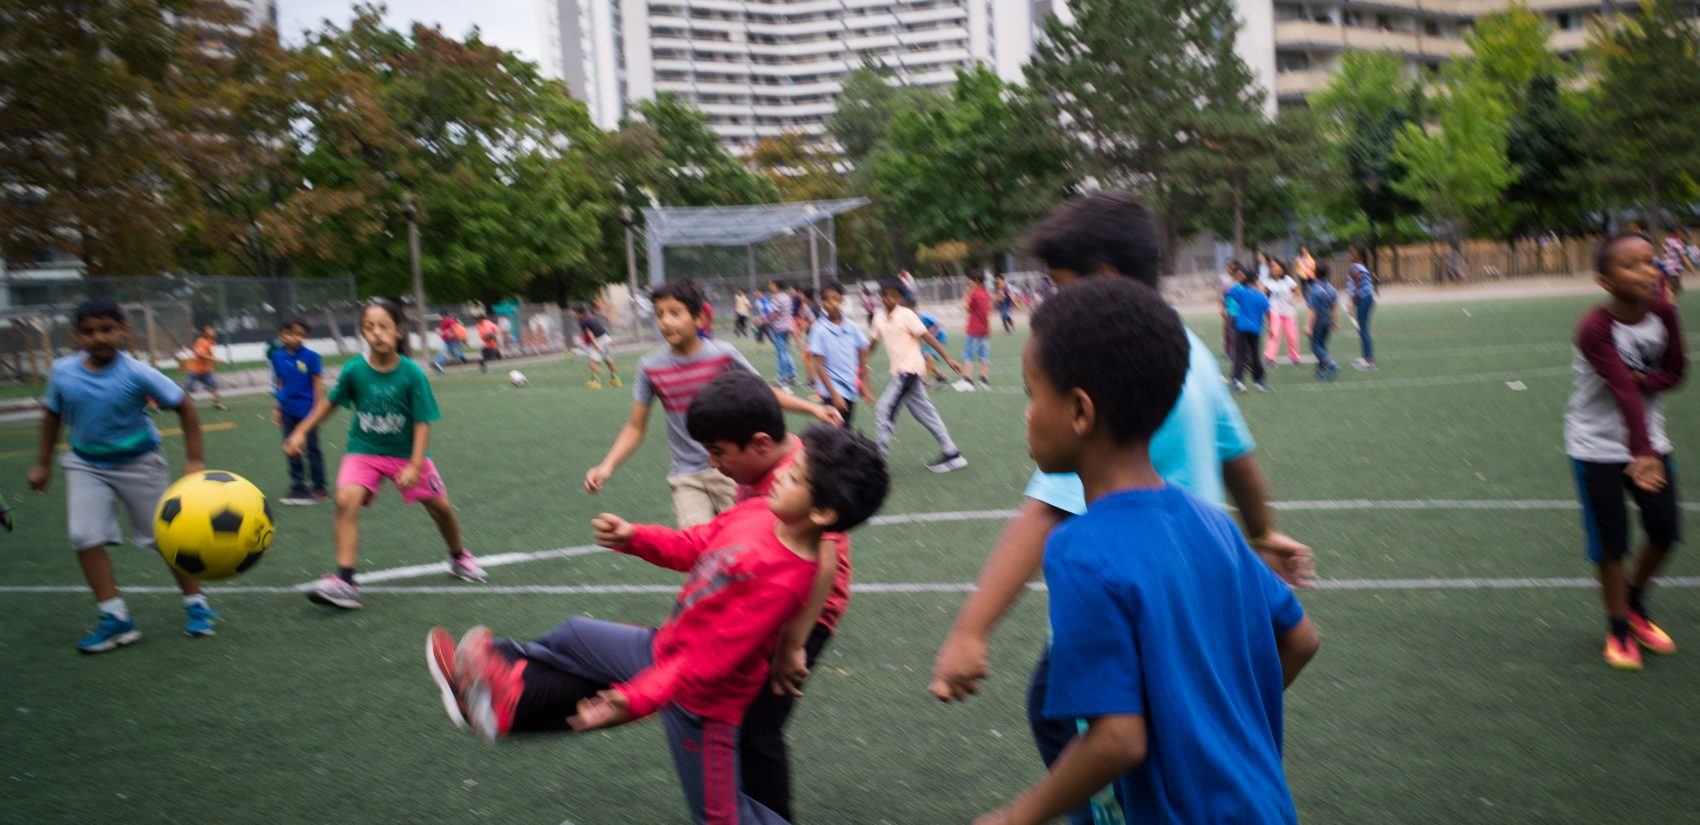 Students play soccer during recess, at Rose Avenue Public School in Toronto, Ontario, Canada. (Ian Willms/For Keystone Crossroads)